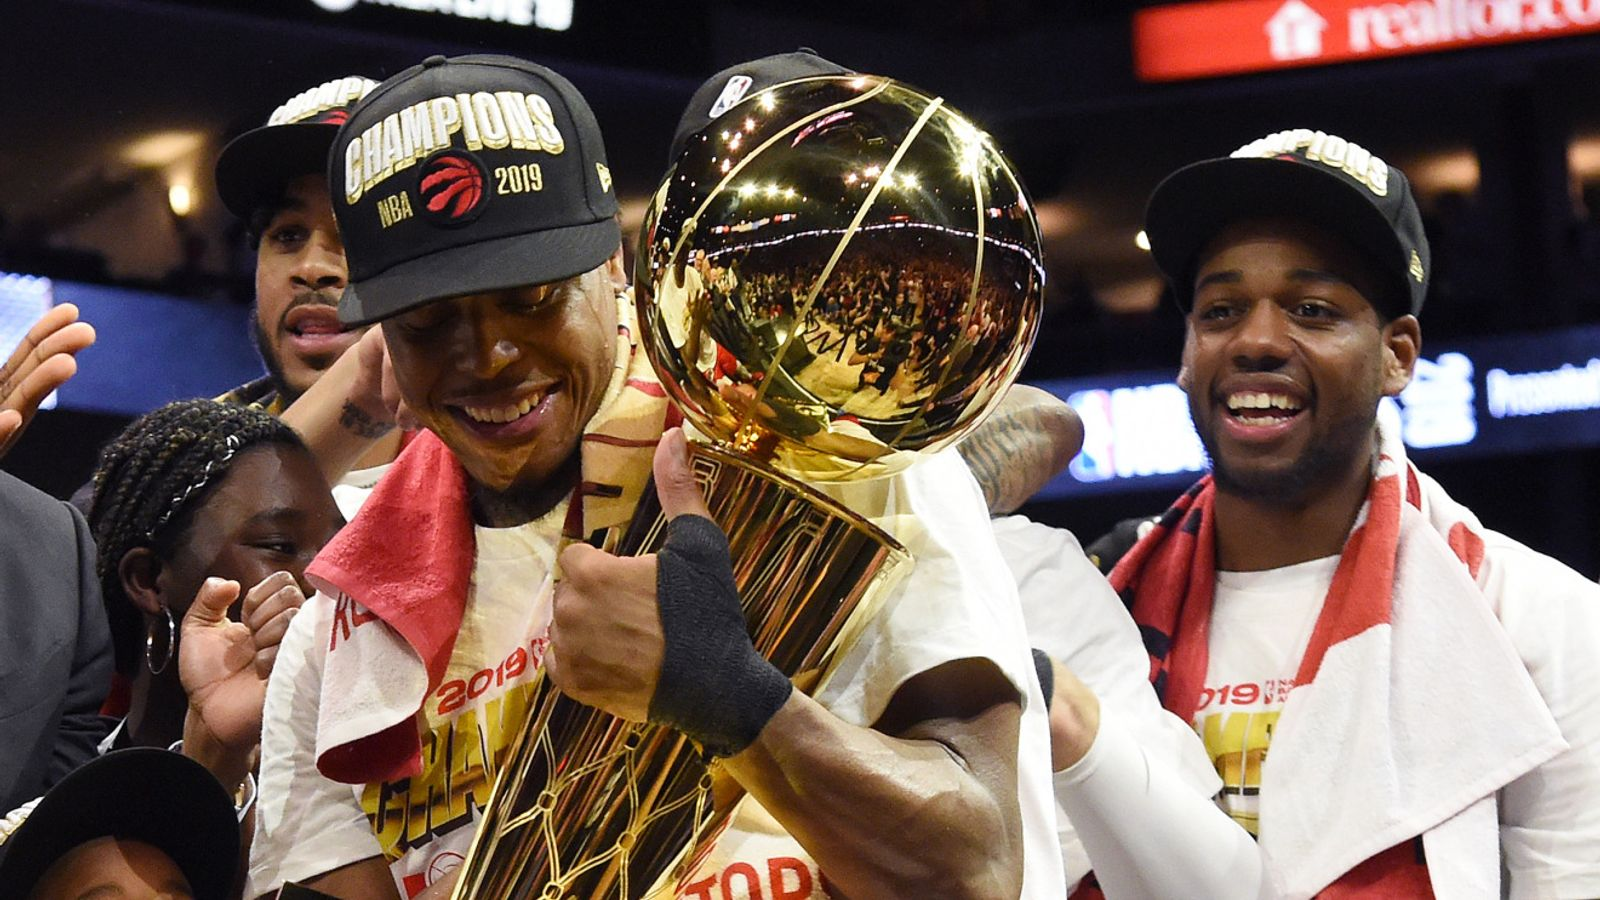 NBA playoffs begin live on Sky Sports from August 17